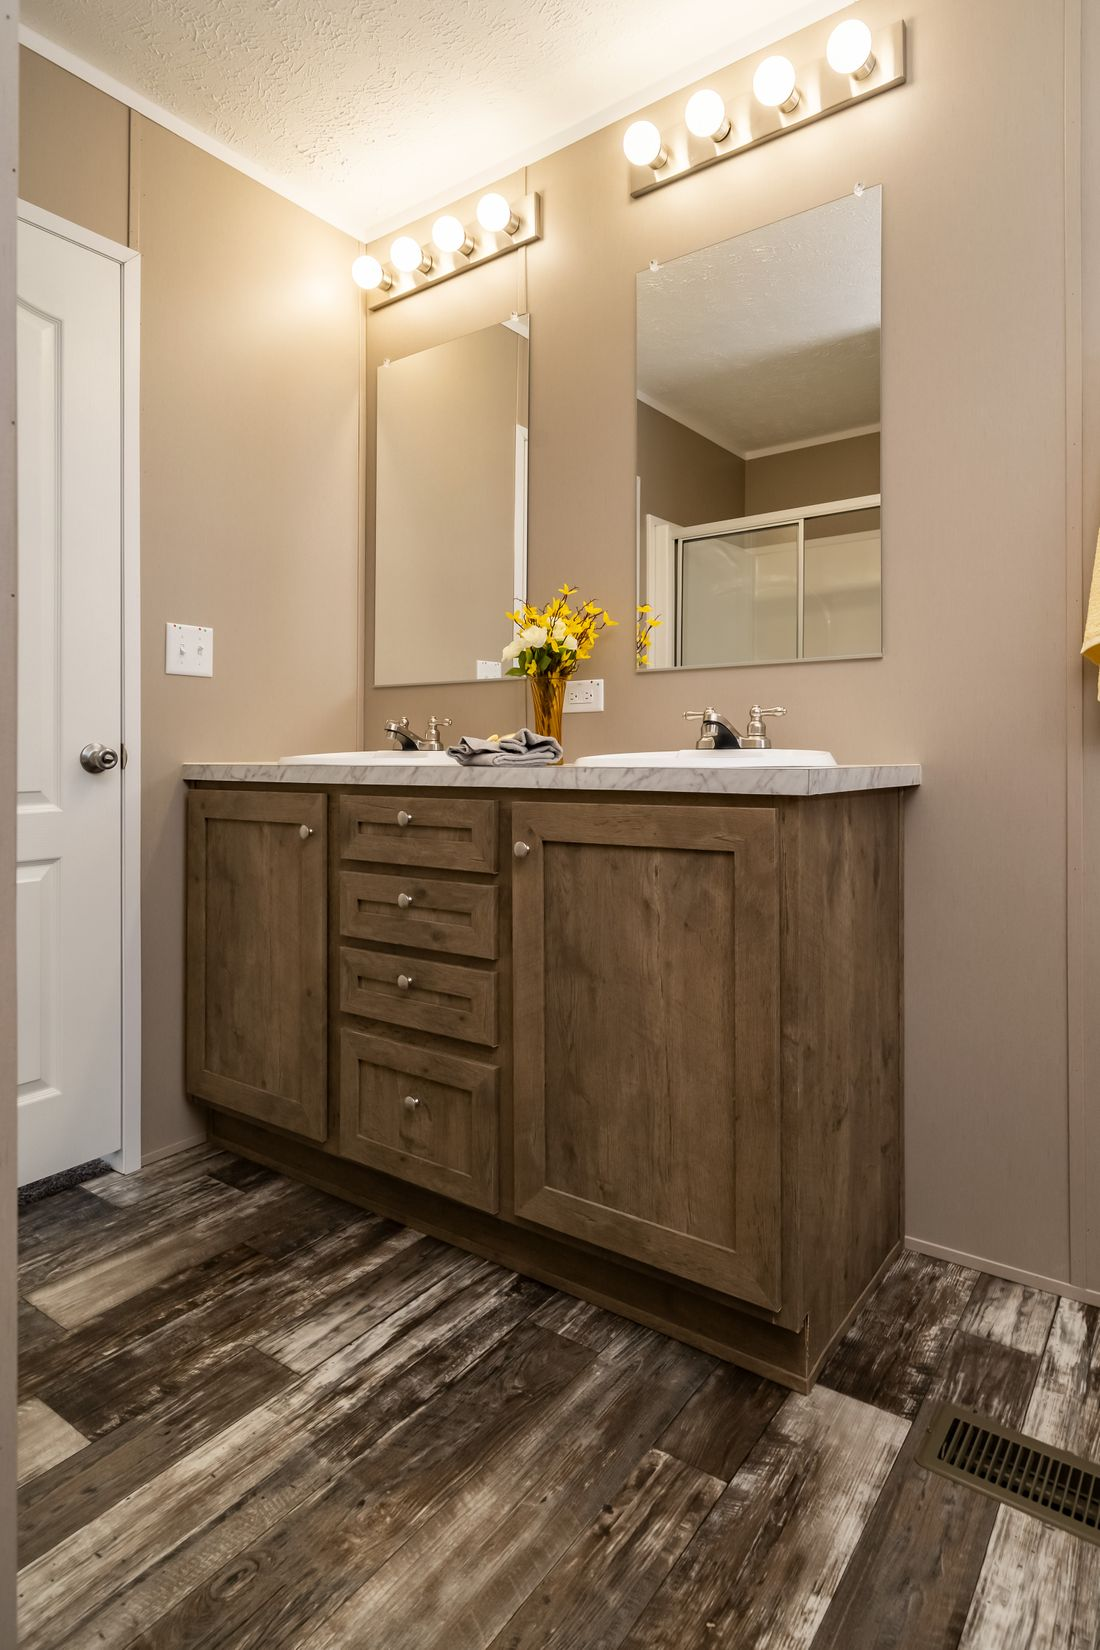 The ULTRA PRO 52 Master Bathroom. This Manufactured Mobile Home features 3 bedrooms and 2 baths.